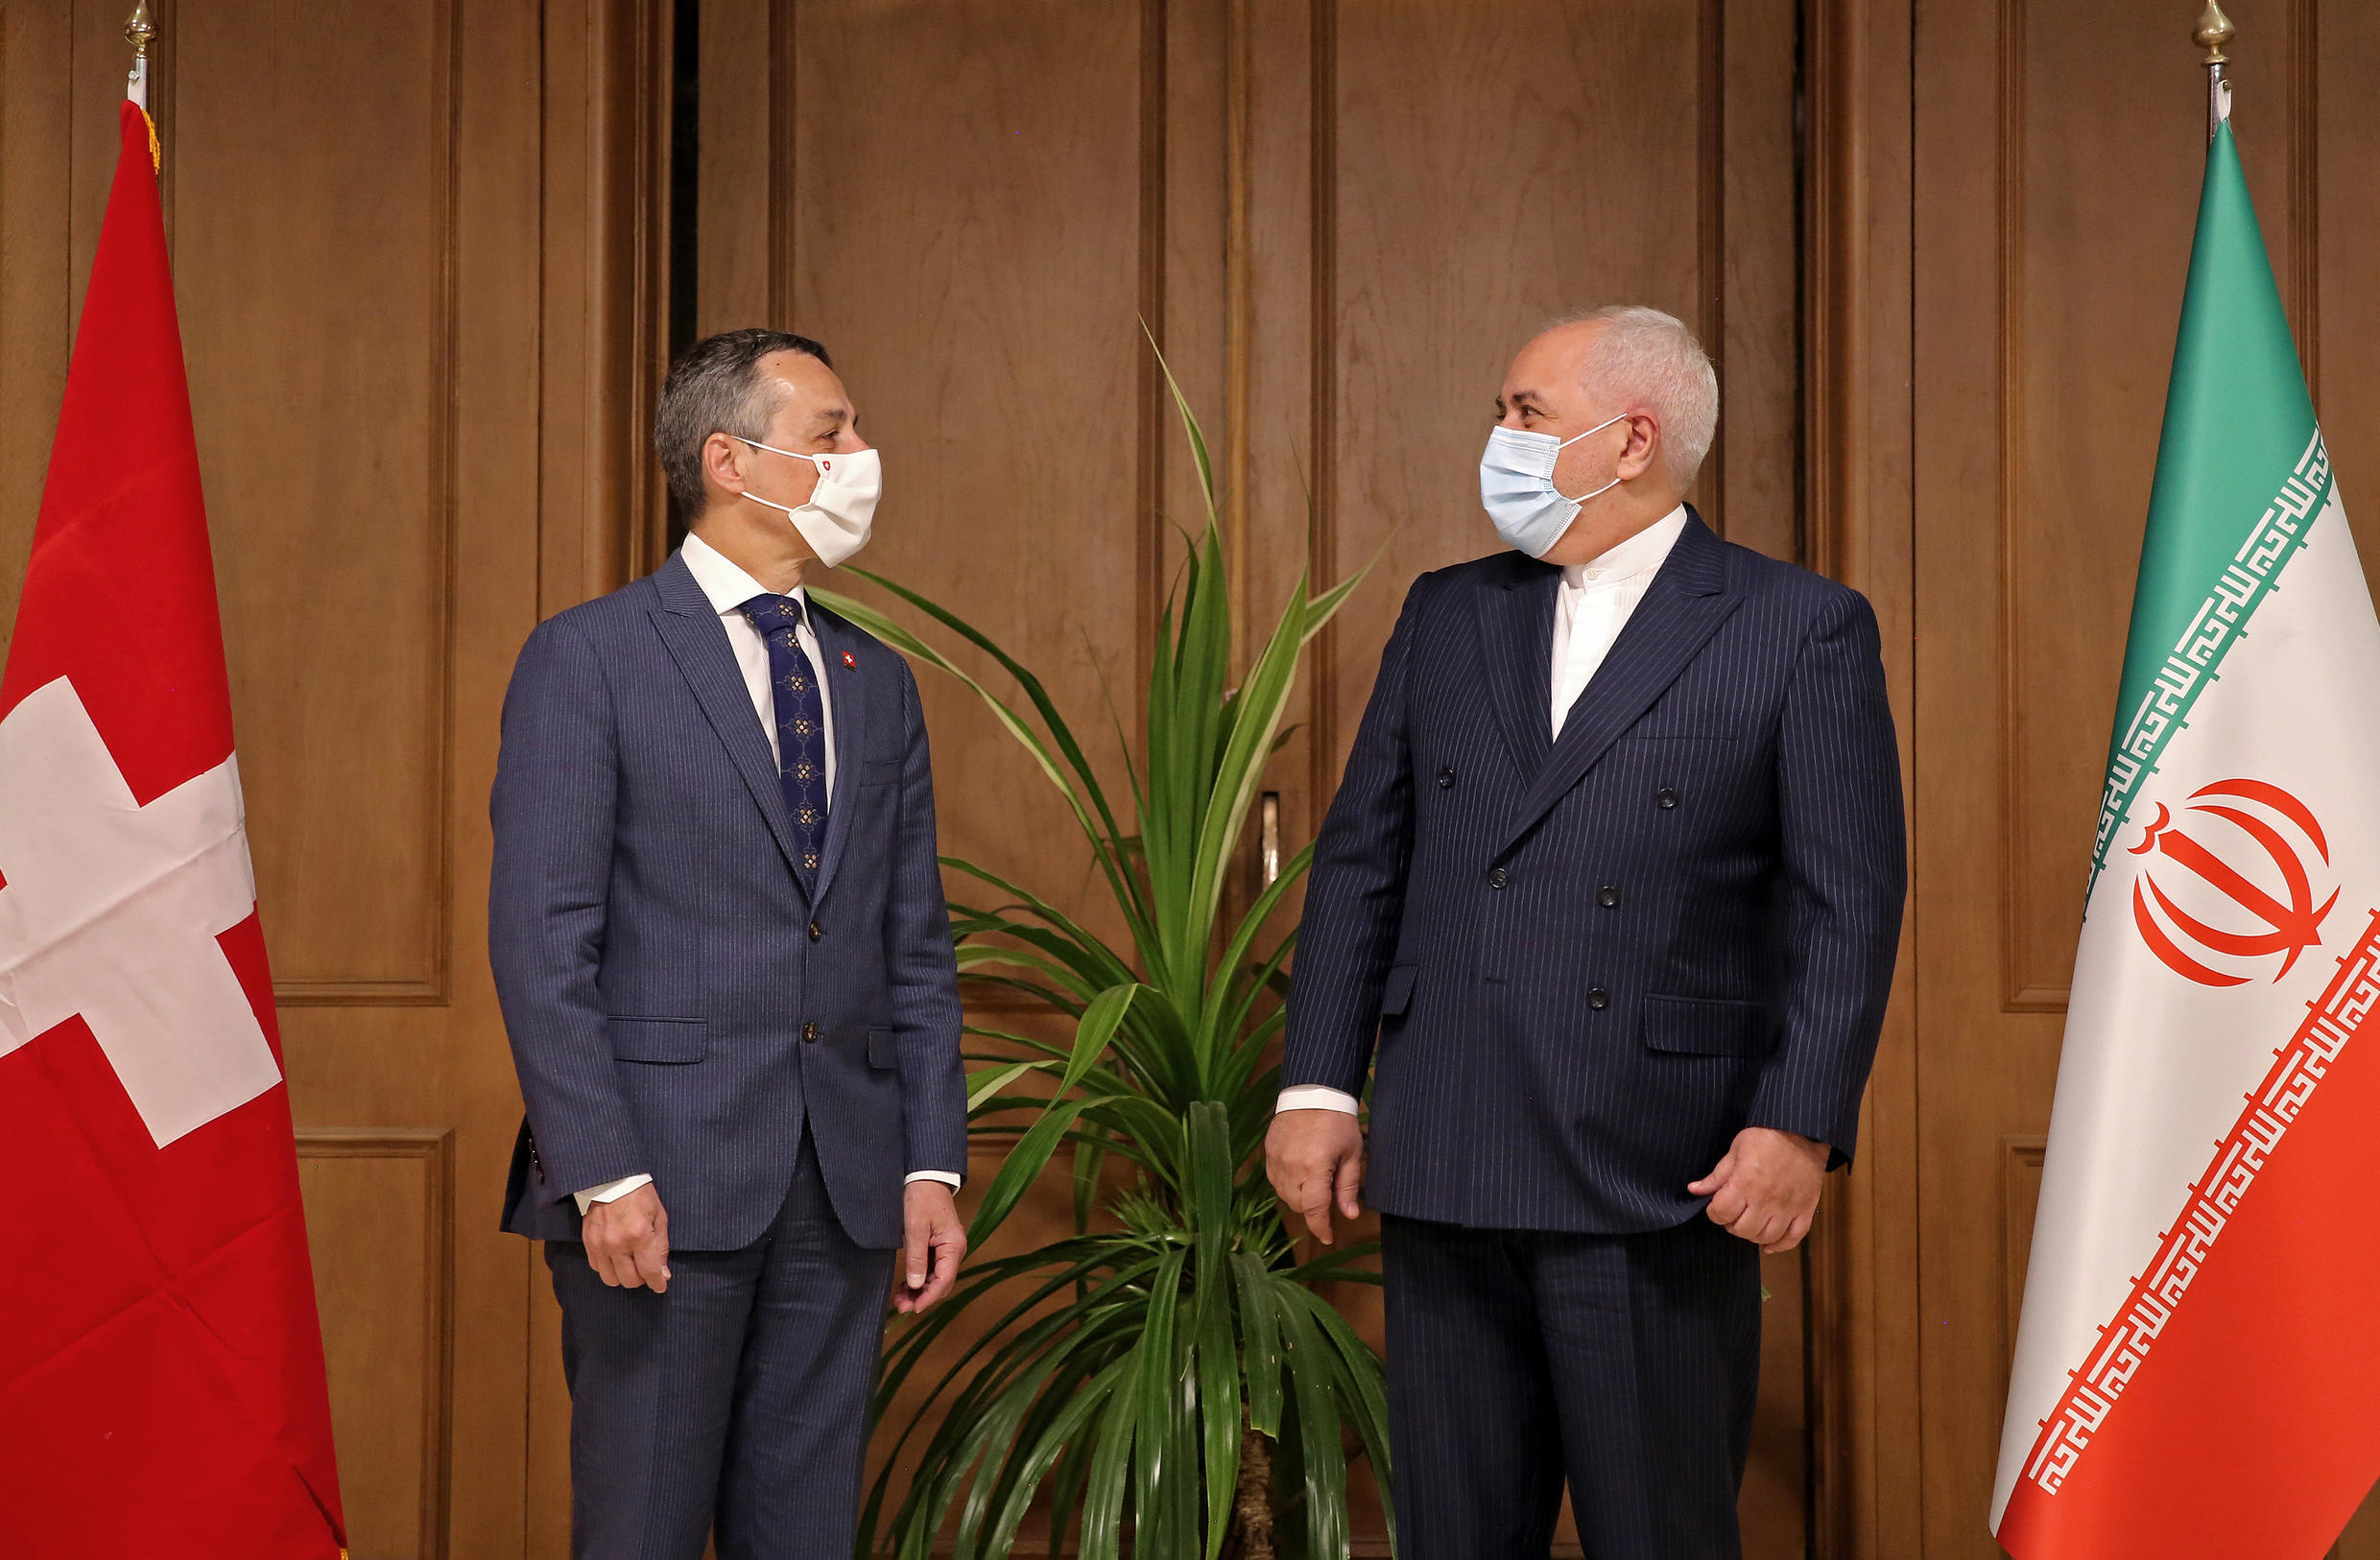 Iran's Foreign Minister Mohammad Javad Zarif met his Swiss counterpart Ignazio Cassis in Tehran for talks